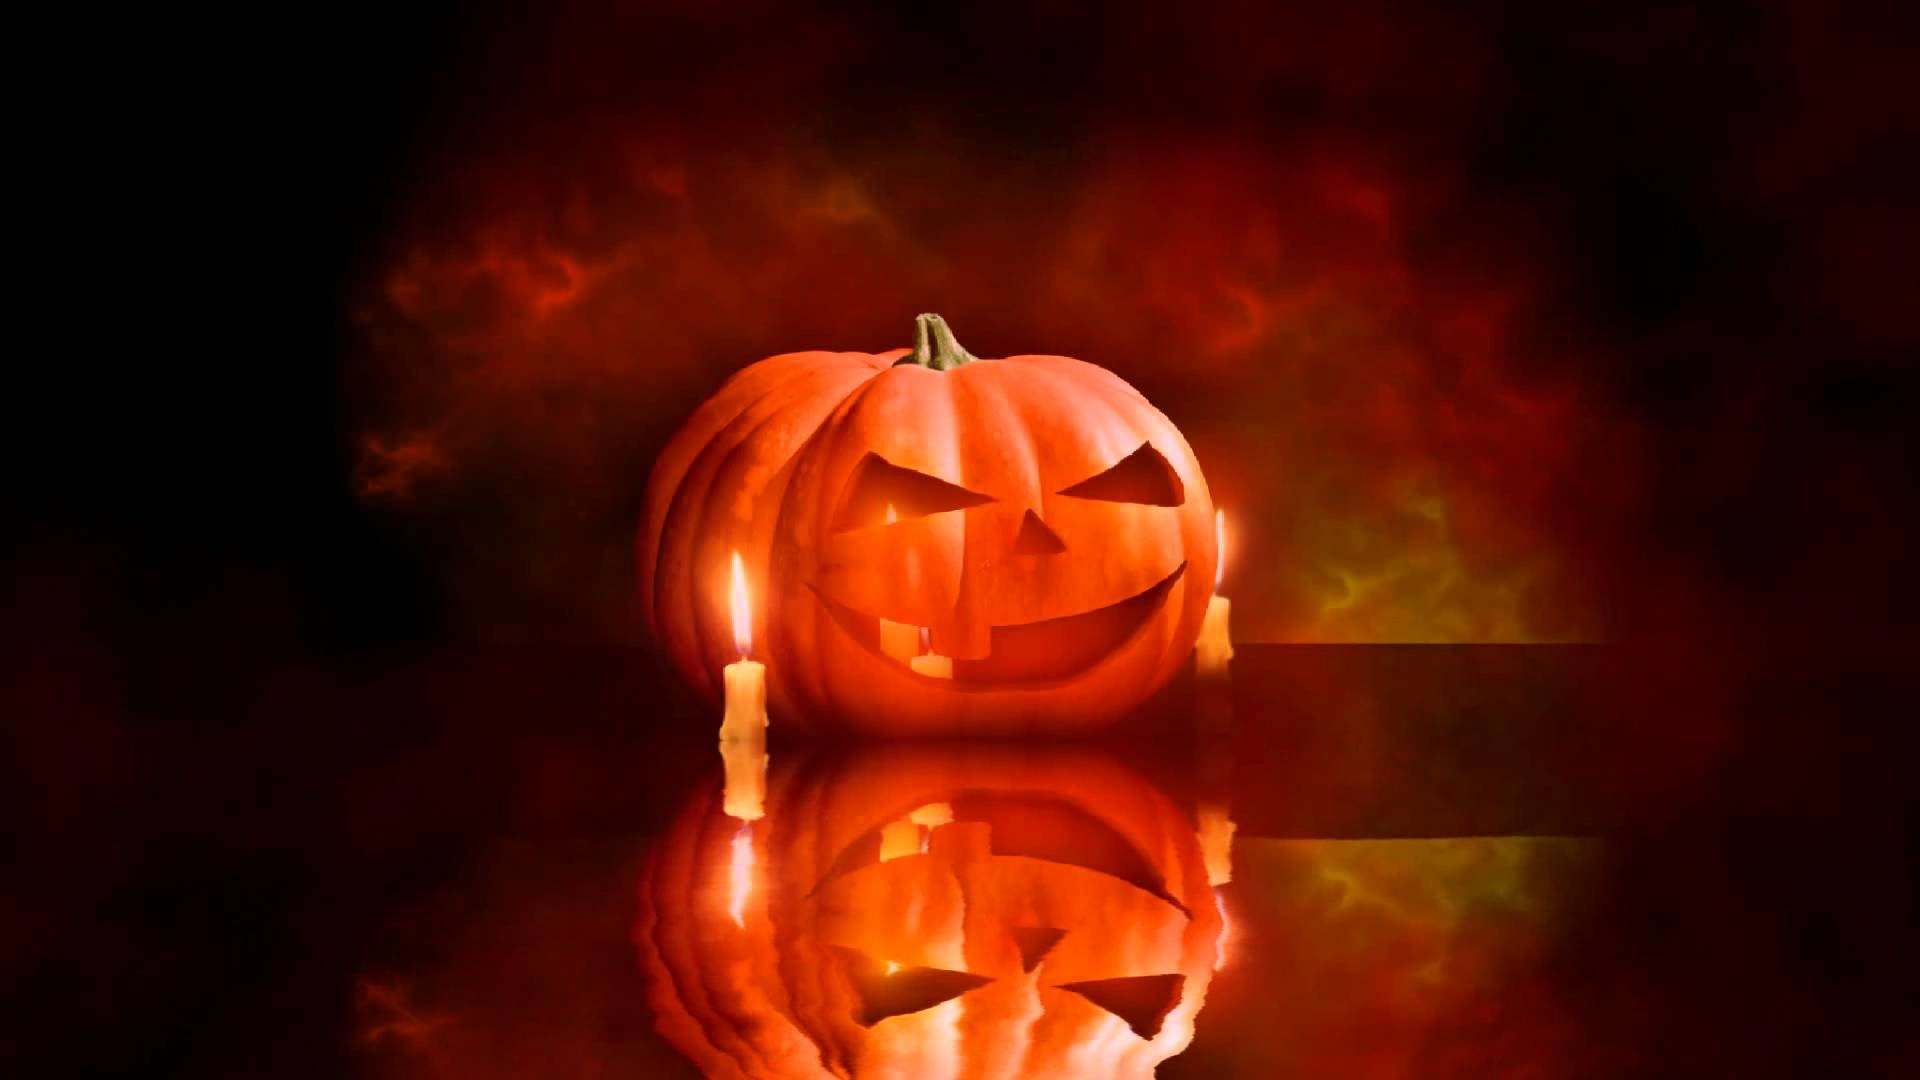 Animated halloween wallpapers 62 images - Scary halloween screensavers animated ...